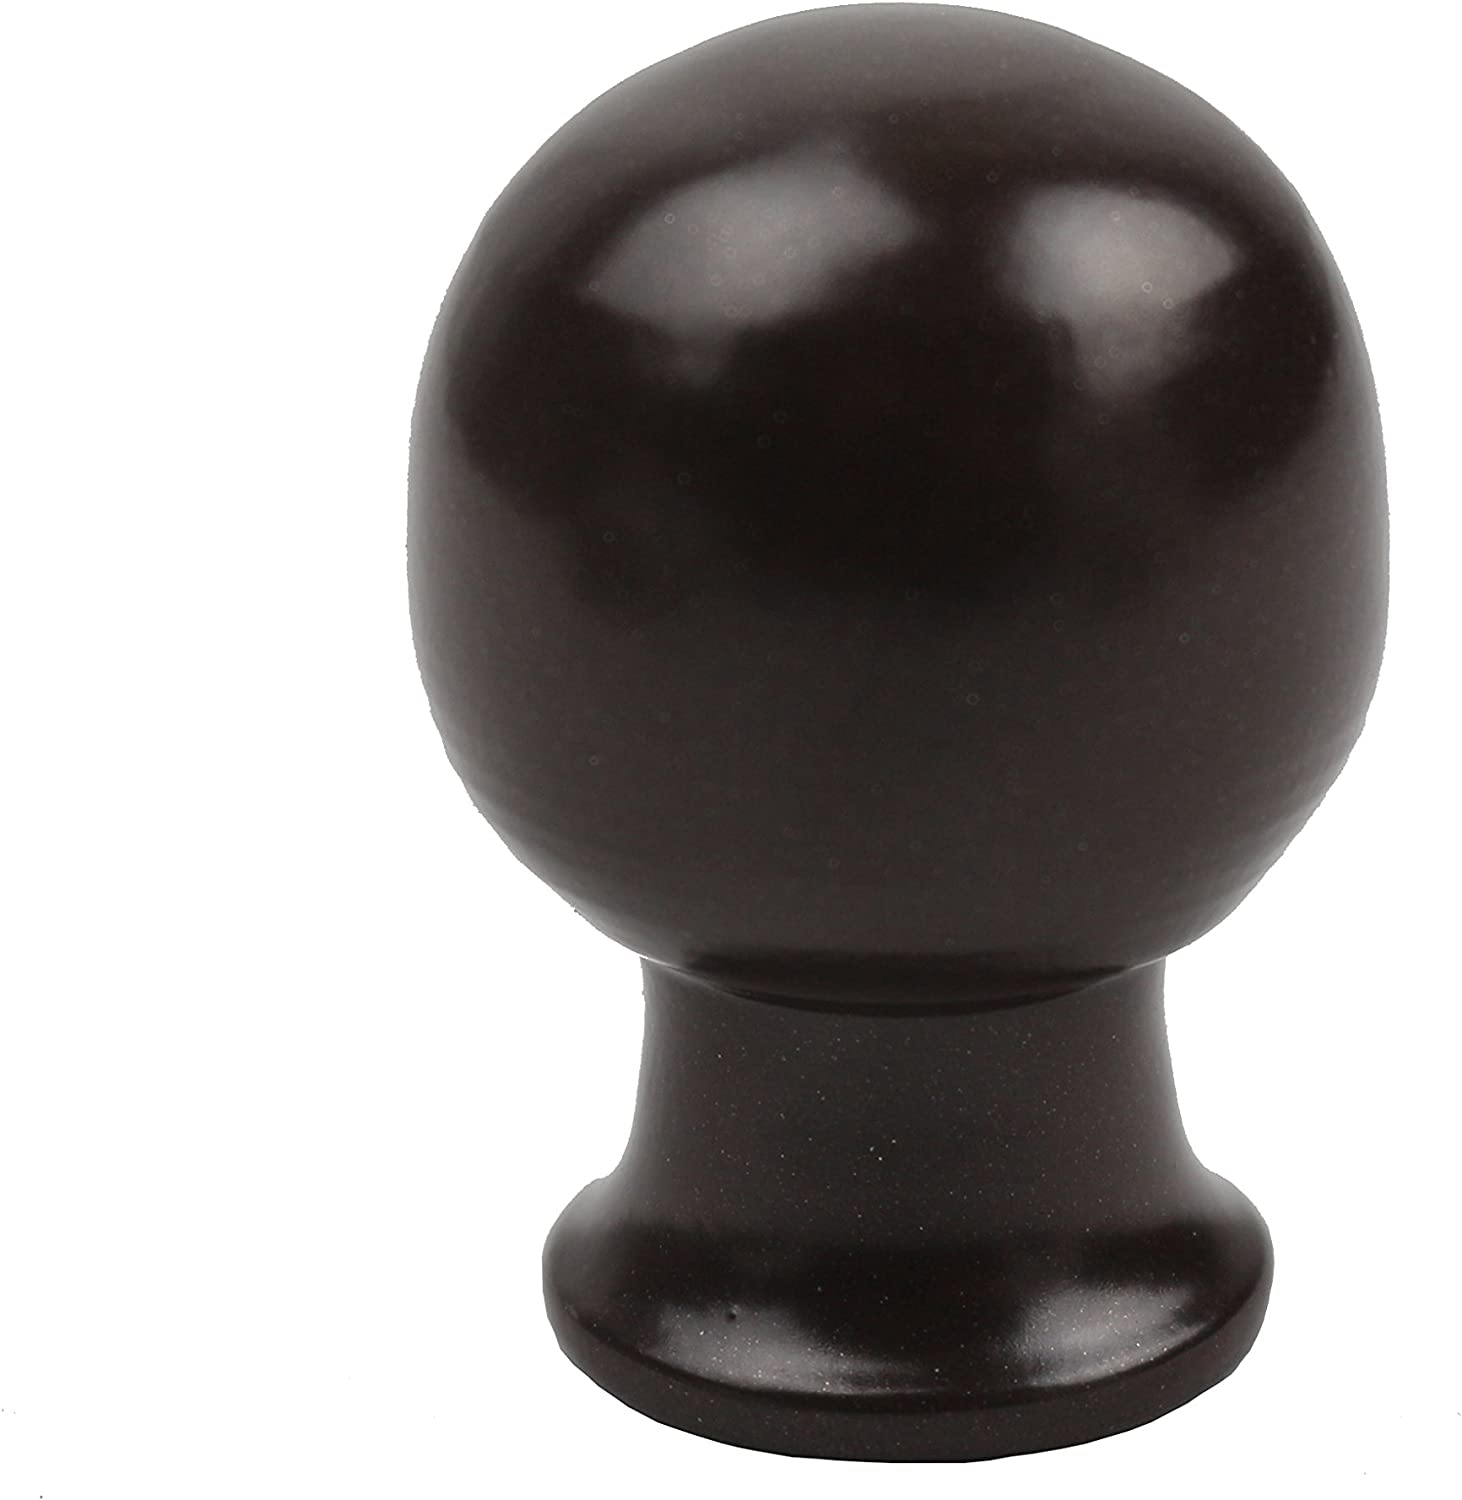 Furnishland Leo Lamp Finial For Lamp Shades,1-1//4-inch Antique Brass